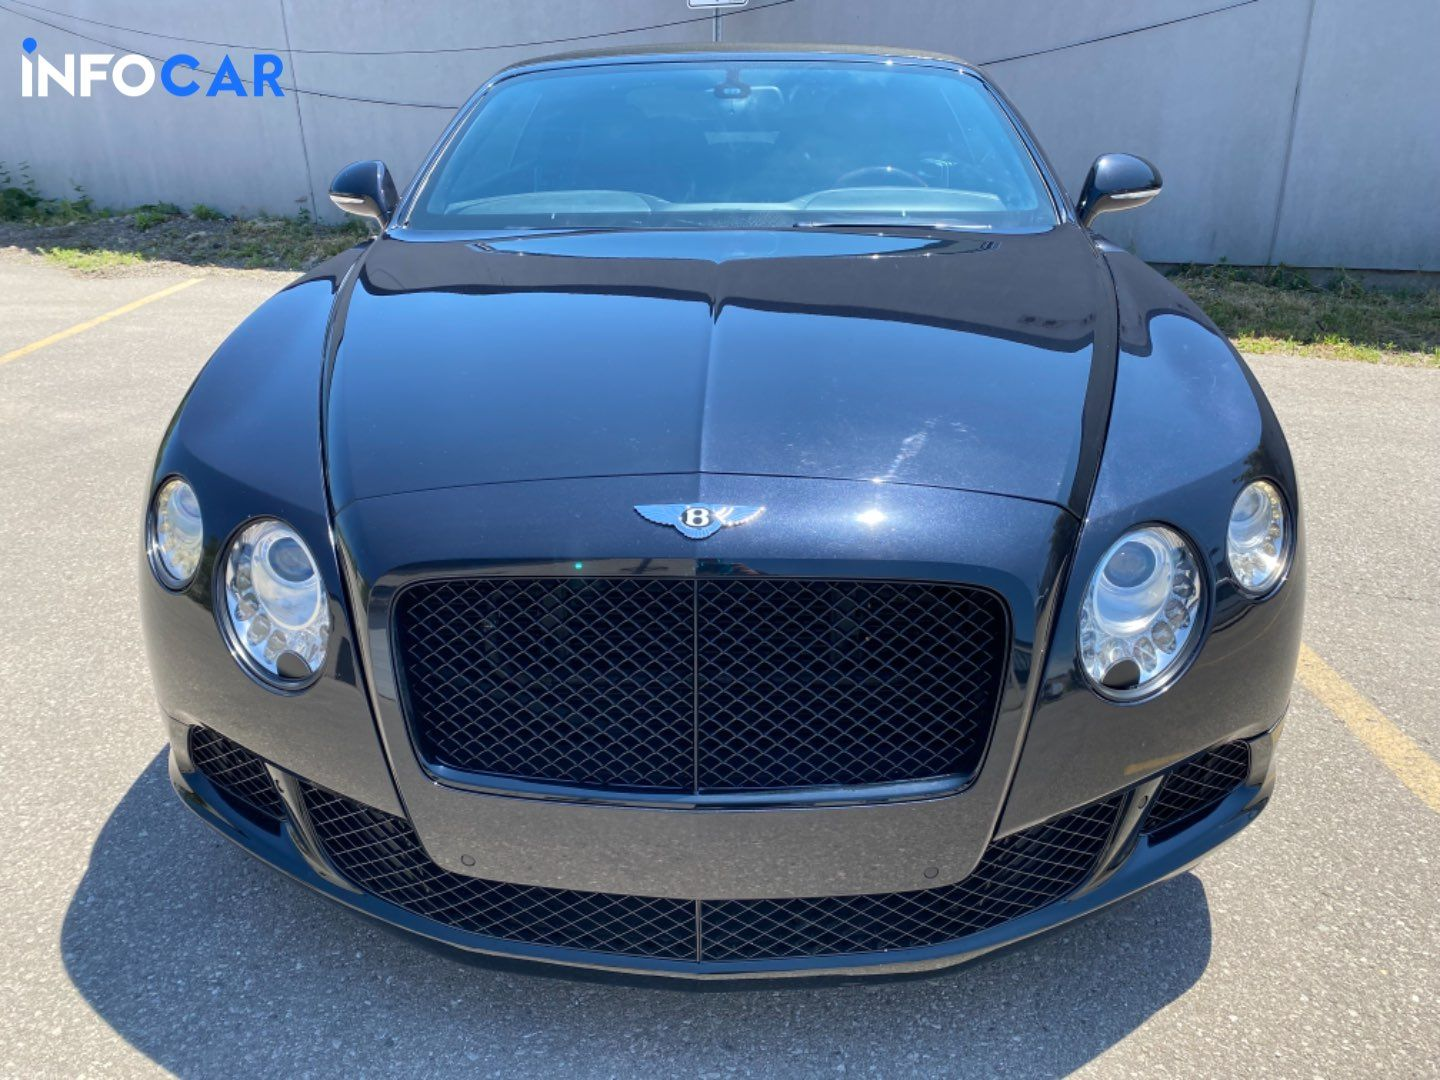 2014 Bentley Continental GT Speed - INFOCAR - Toronto's Most Comprehensive New and Used Auto Trading Platform